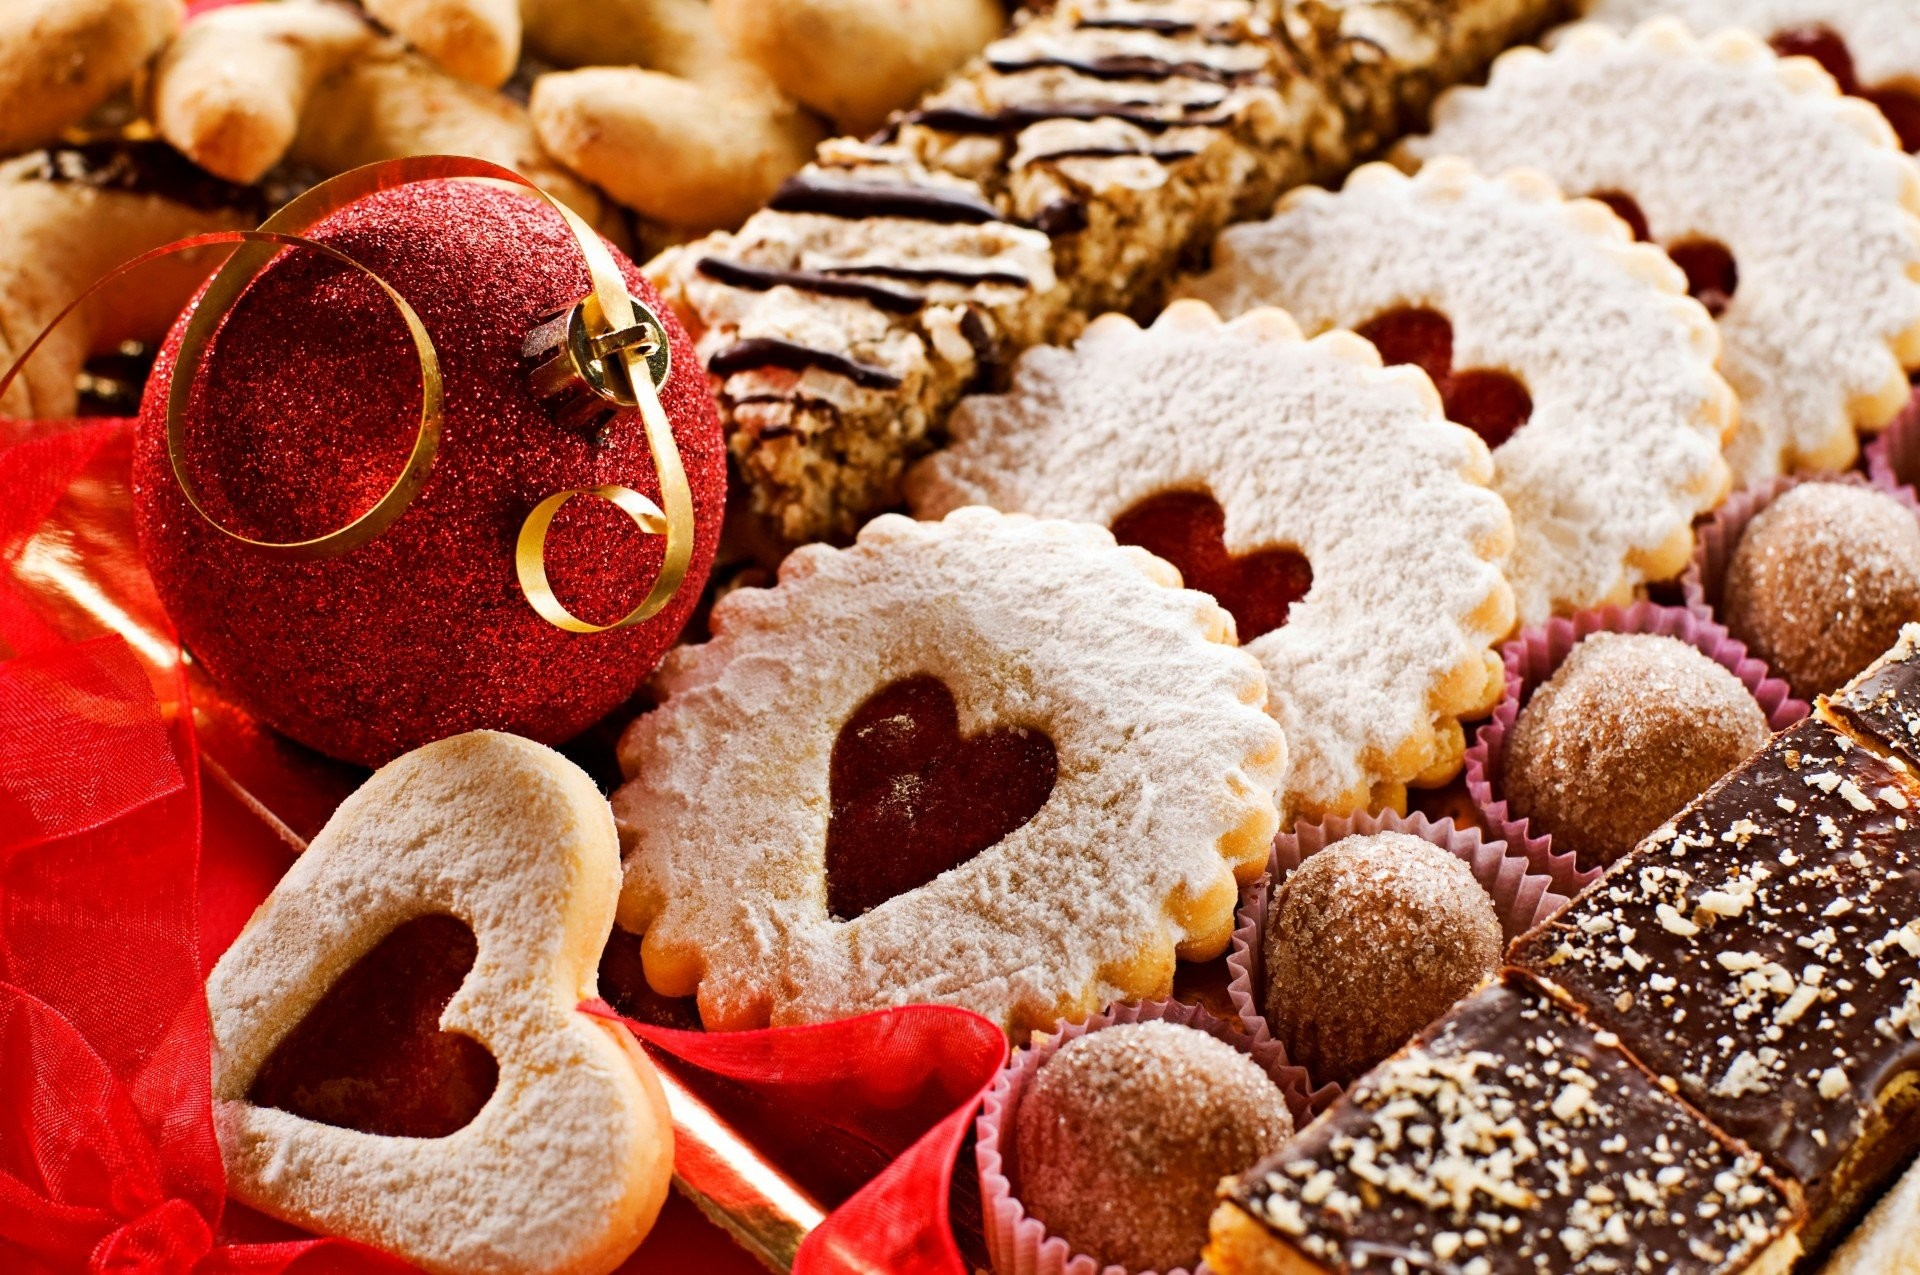 1920x1275 heart cupcakes heart cookies candy holiday belt new year balls decoration  food a merry christmas christmas